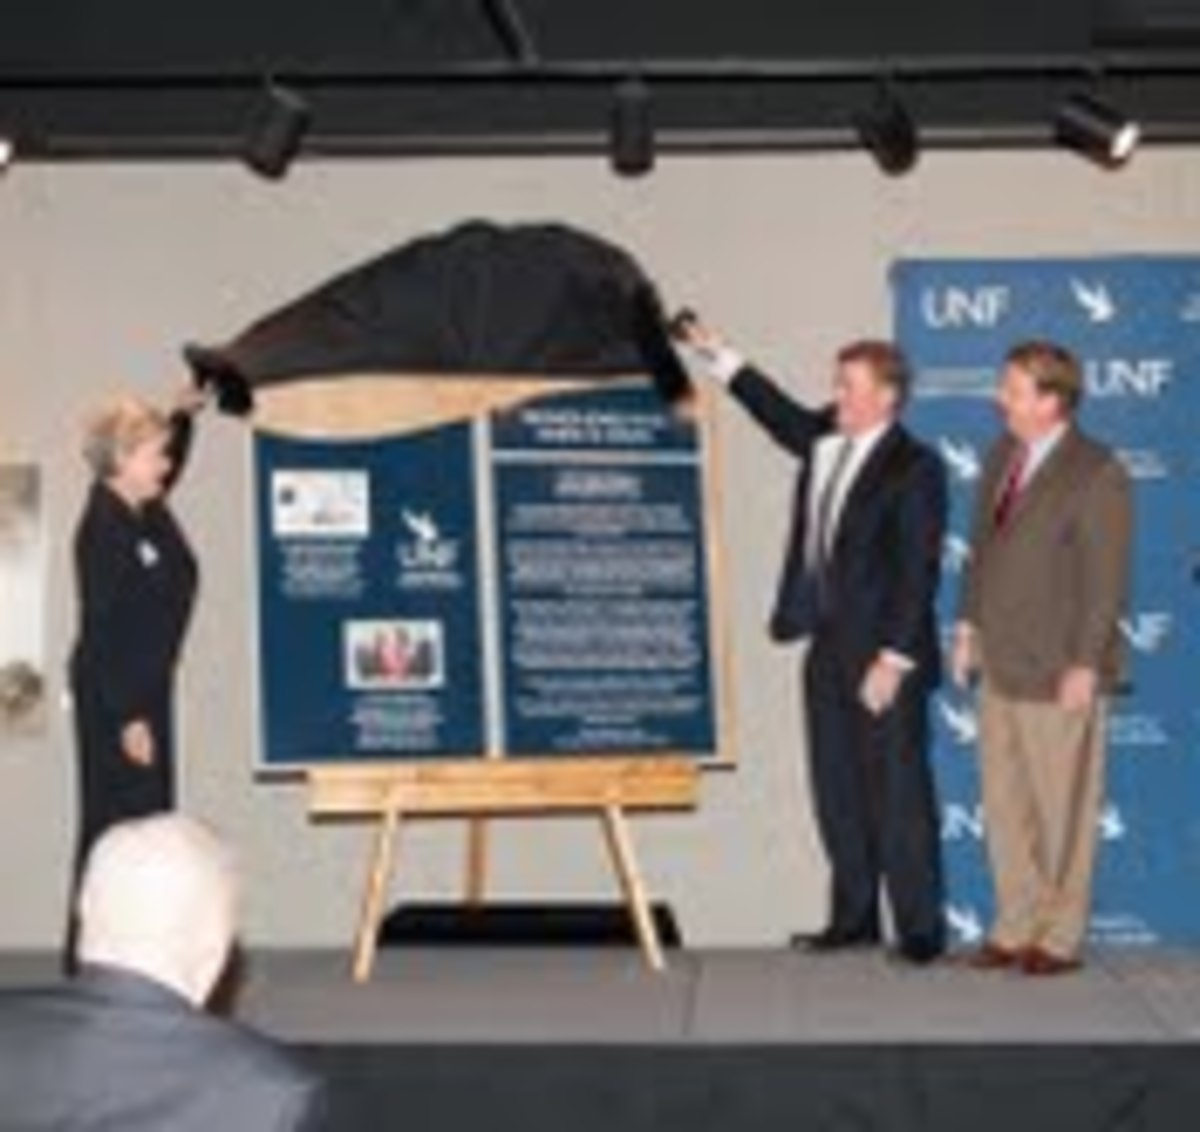 The new plaque honoring the Skinner Family is revealed. Photo by Jennifer Grissom of UNF Public Relations